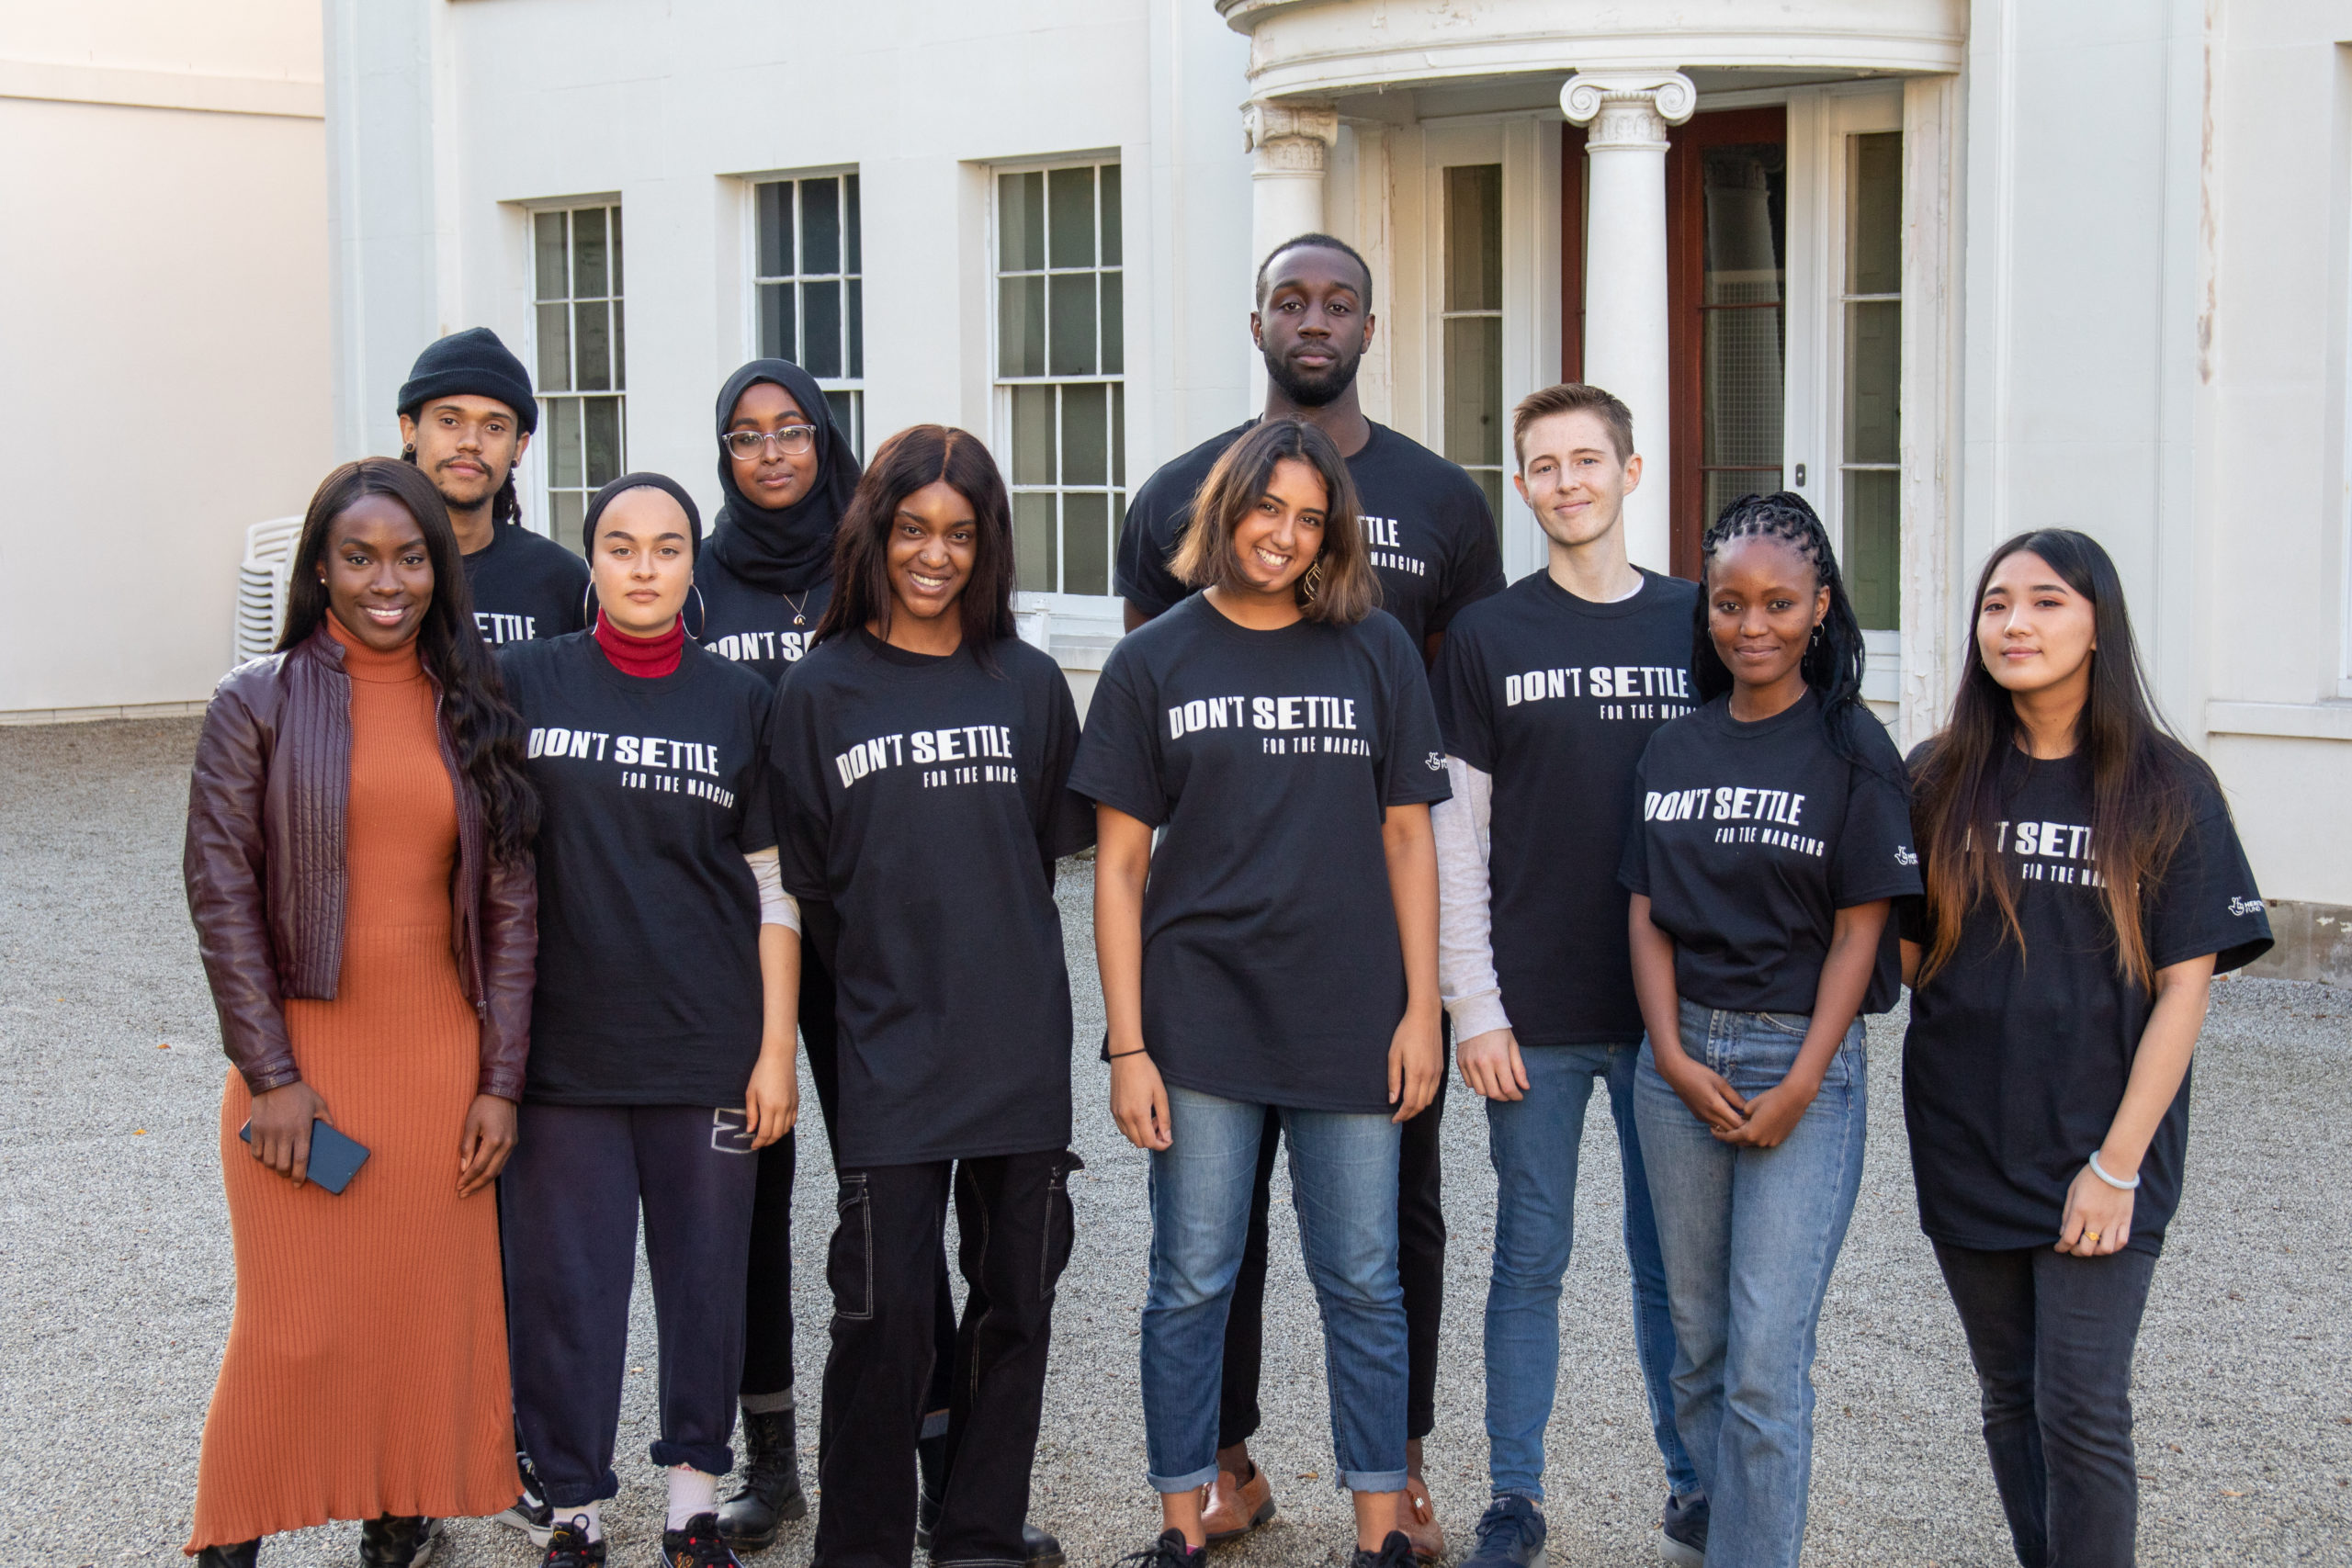 A group of young people wearing black t shirts reading Don't Settle in white text smiling and standing in front of a historic white building.